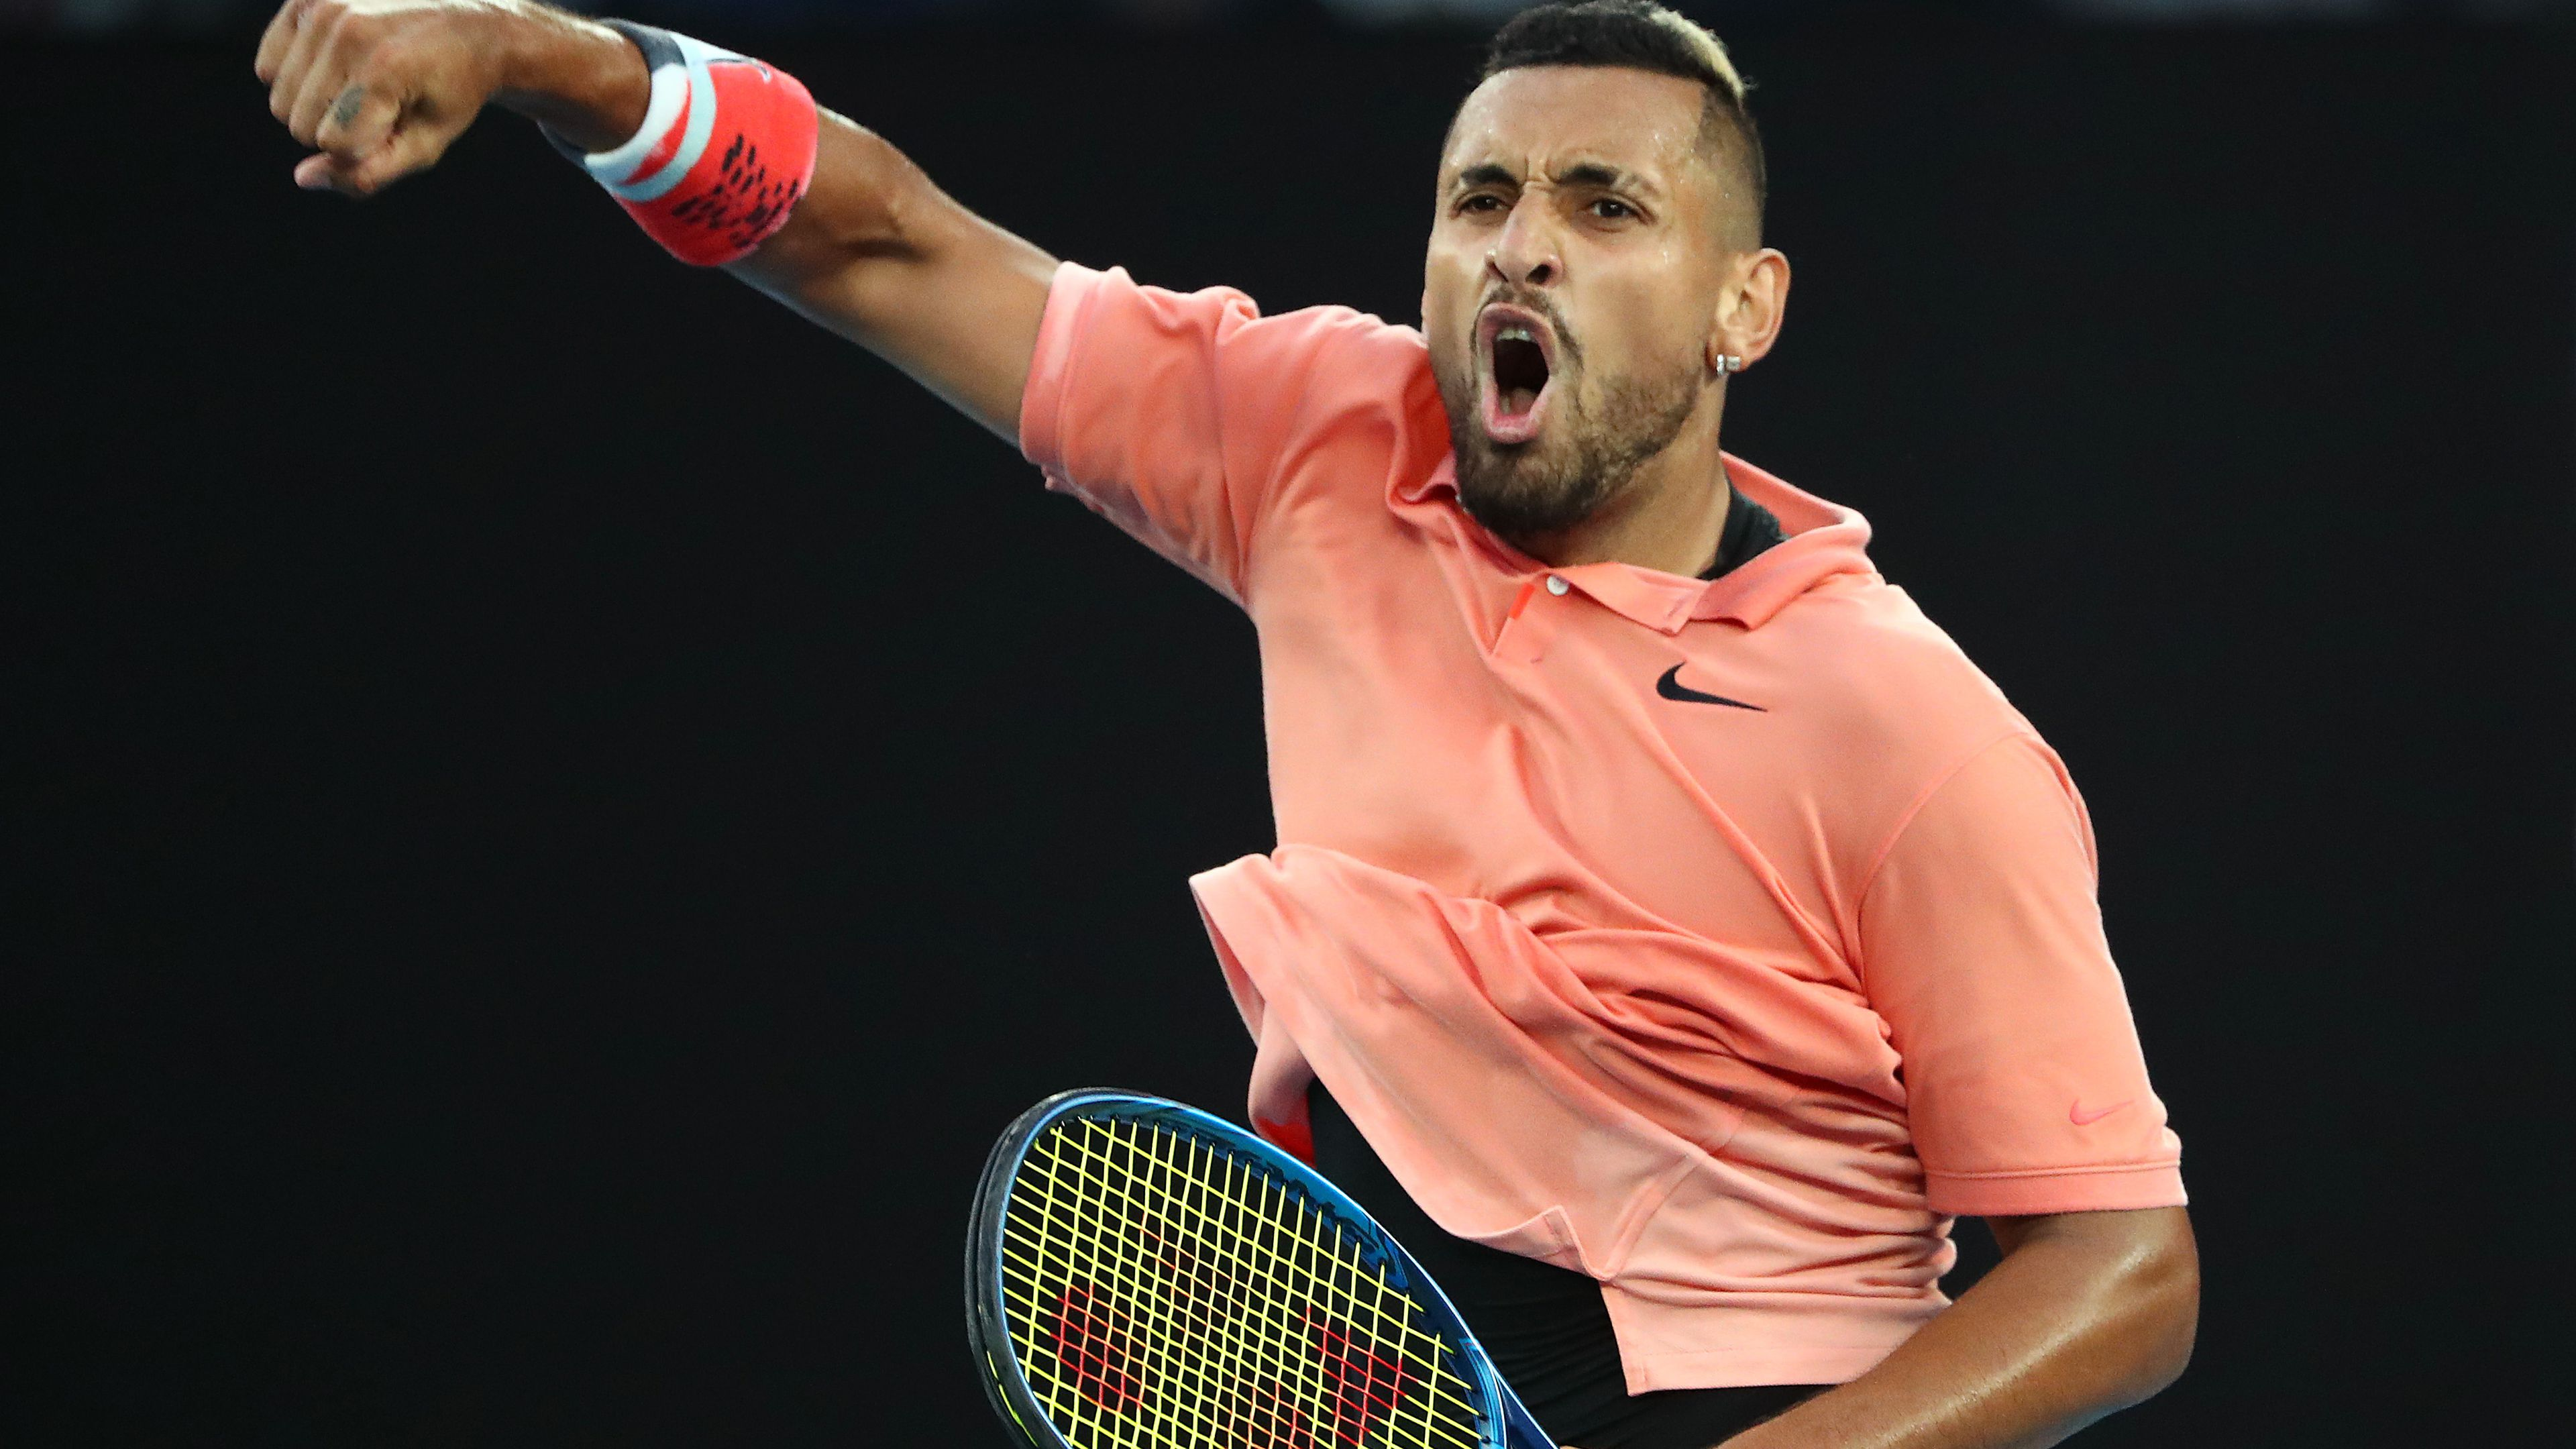 John McEnroe confident in turning point for Nick Kyrgios, after exit at 'slow' Open